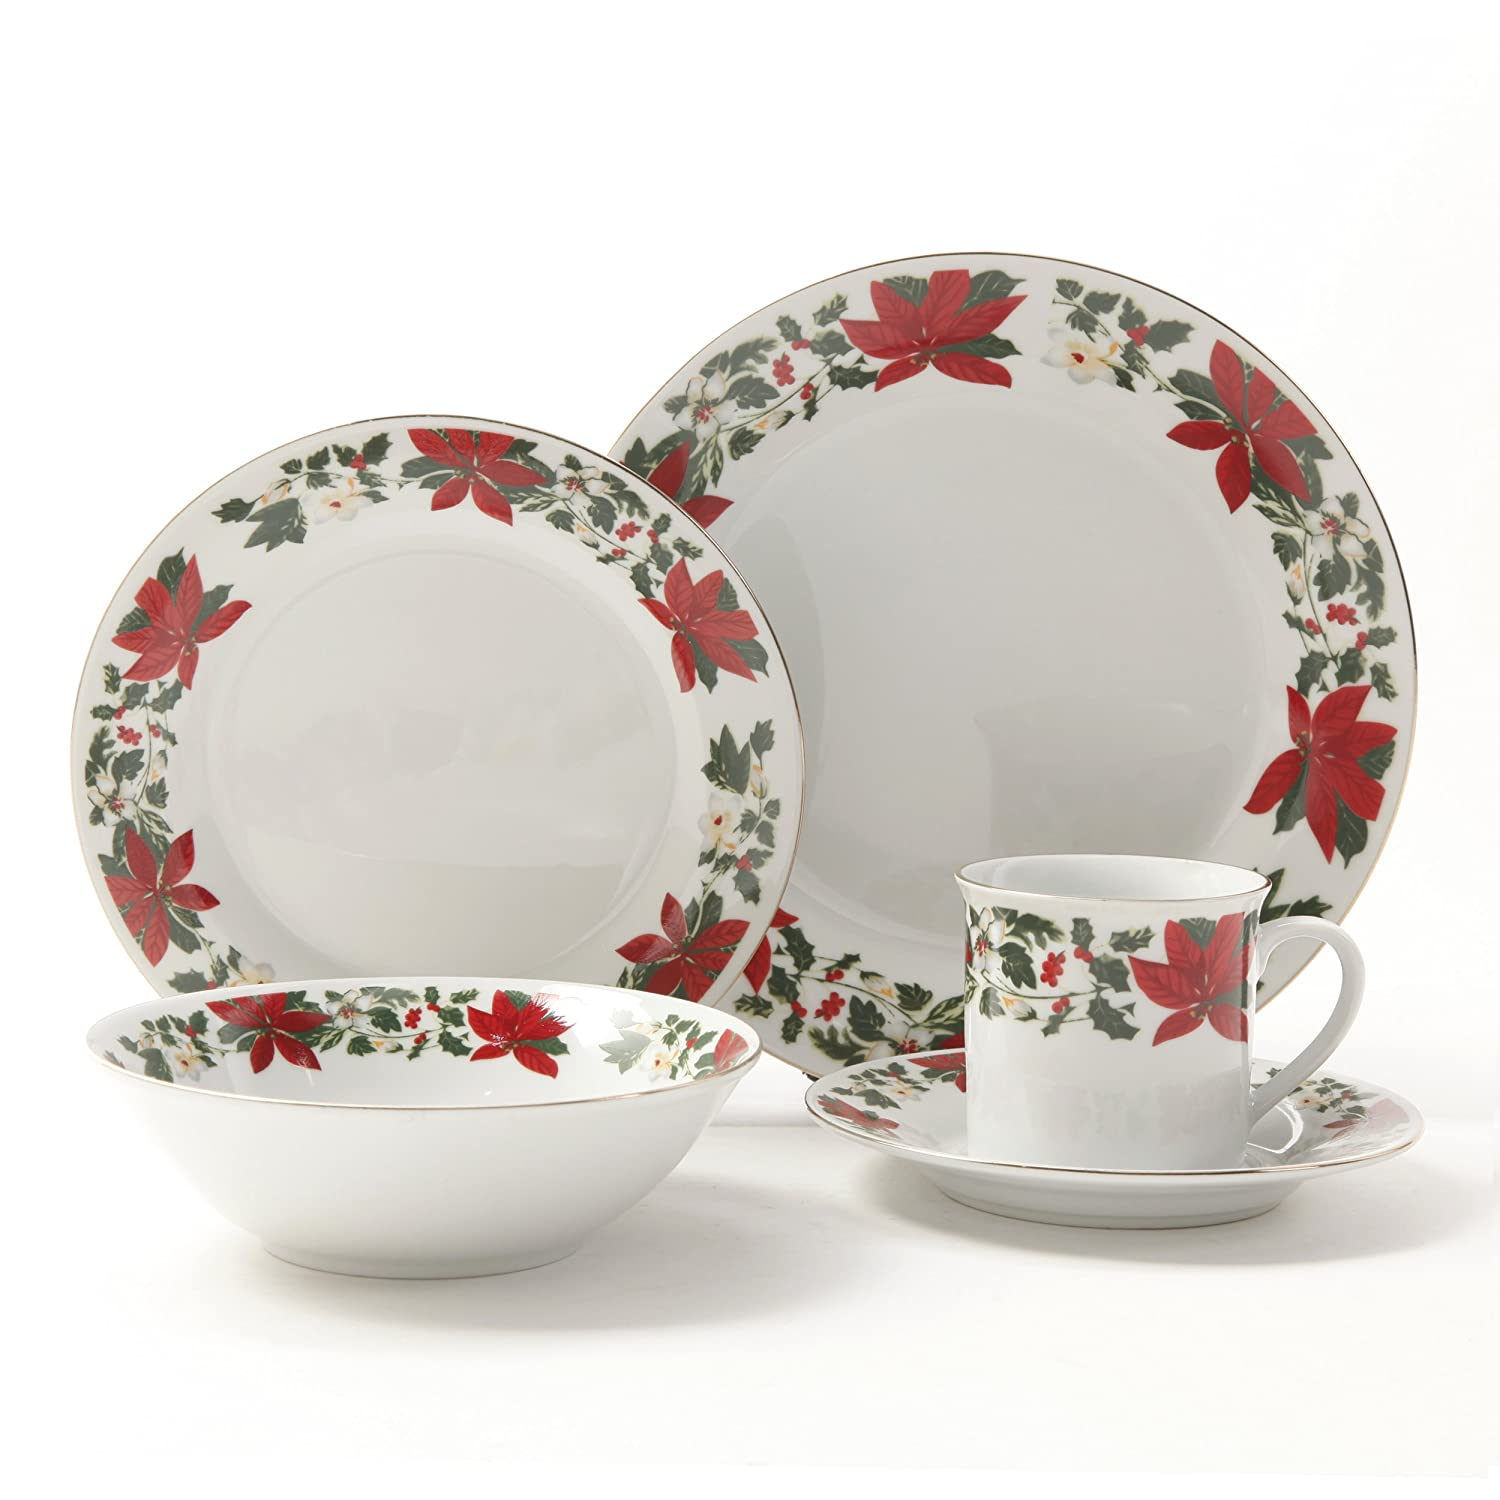 Gibson Poinsettia Holiday Dinnerware Set 20-Piece Gibson is a third generation company initiated by our grandfather. Then our father Nejat Gabbay ...  sc 1 st  Flowers Wikii & Poinsettia Dinnerware Sets - Flowers Wikii